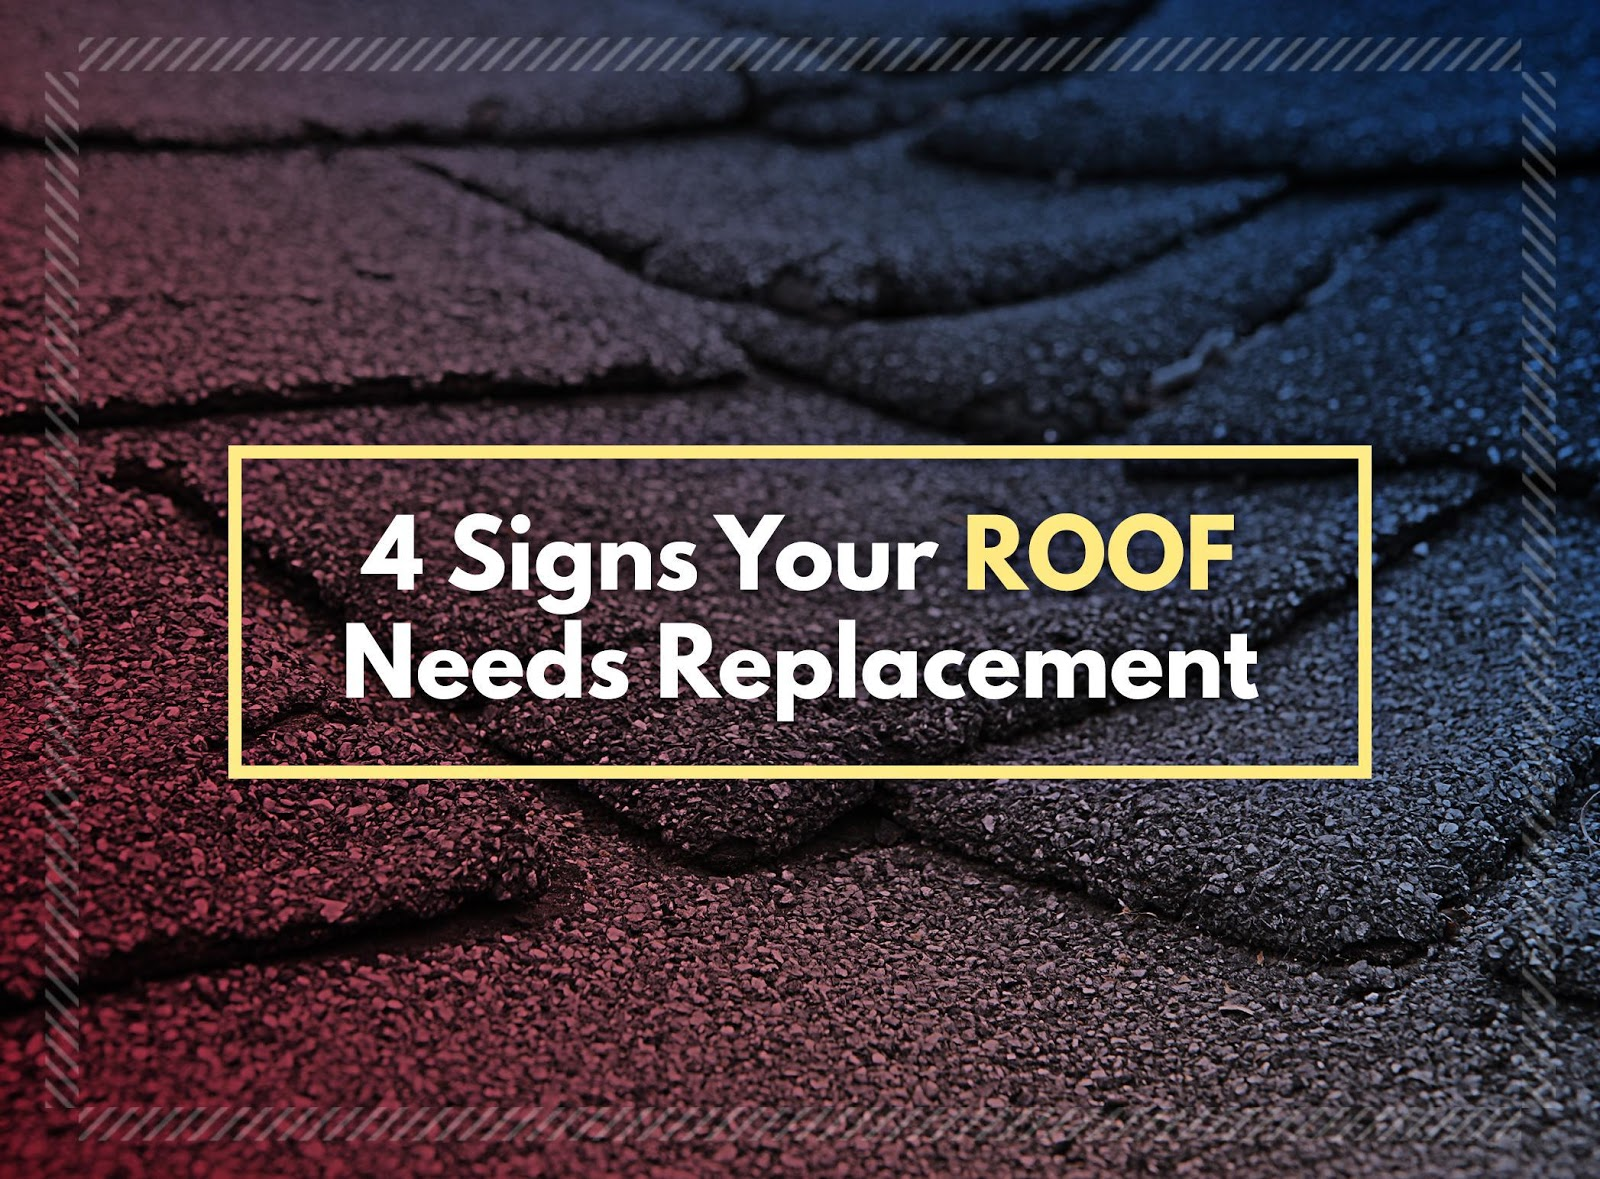 4 Signs Your Roof Needs Replacement